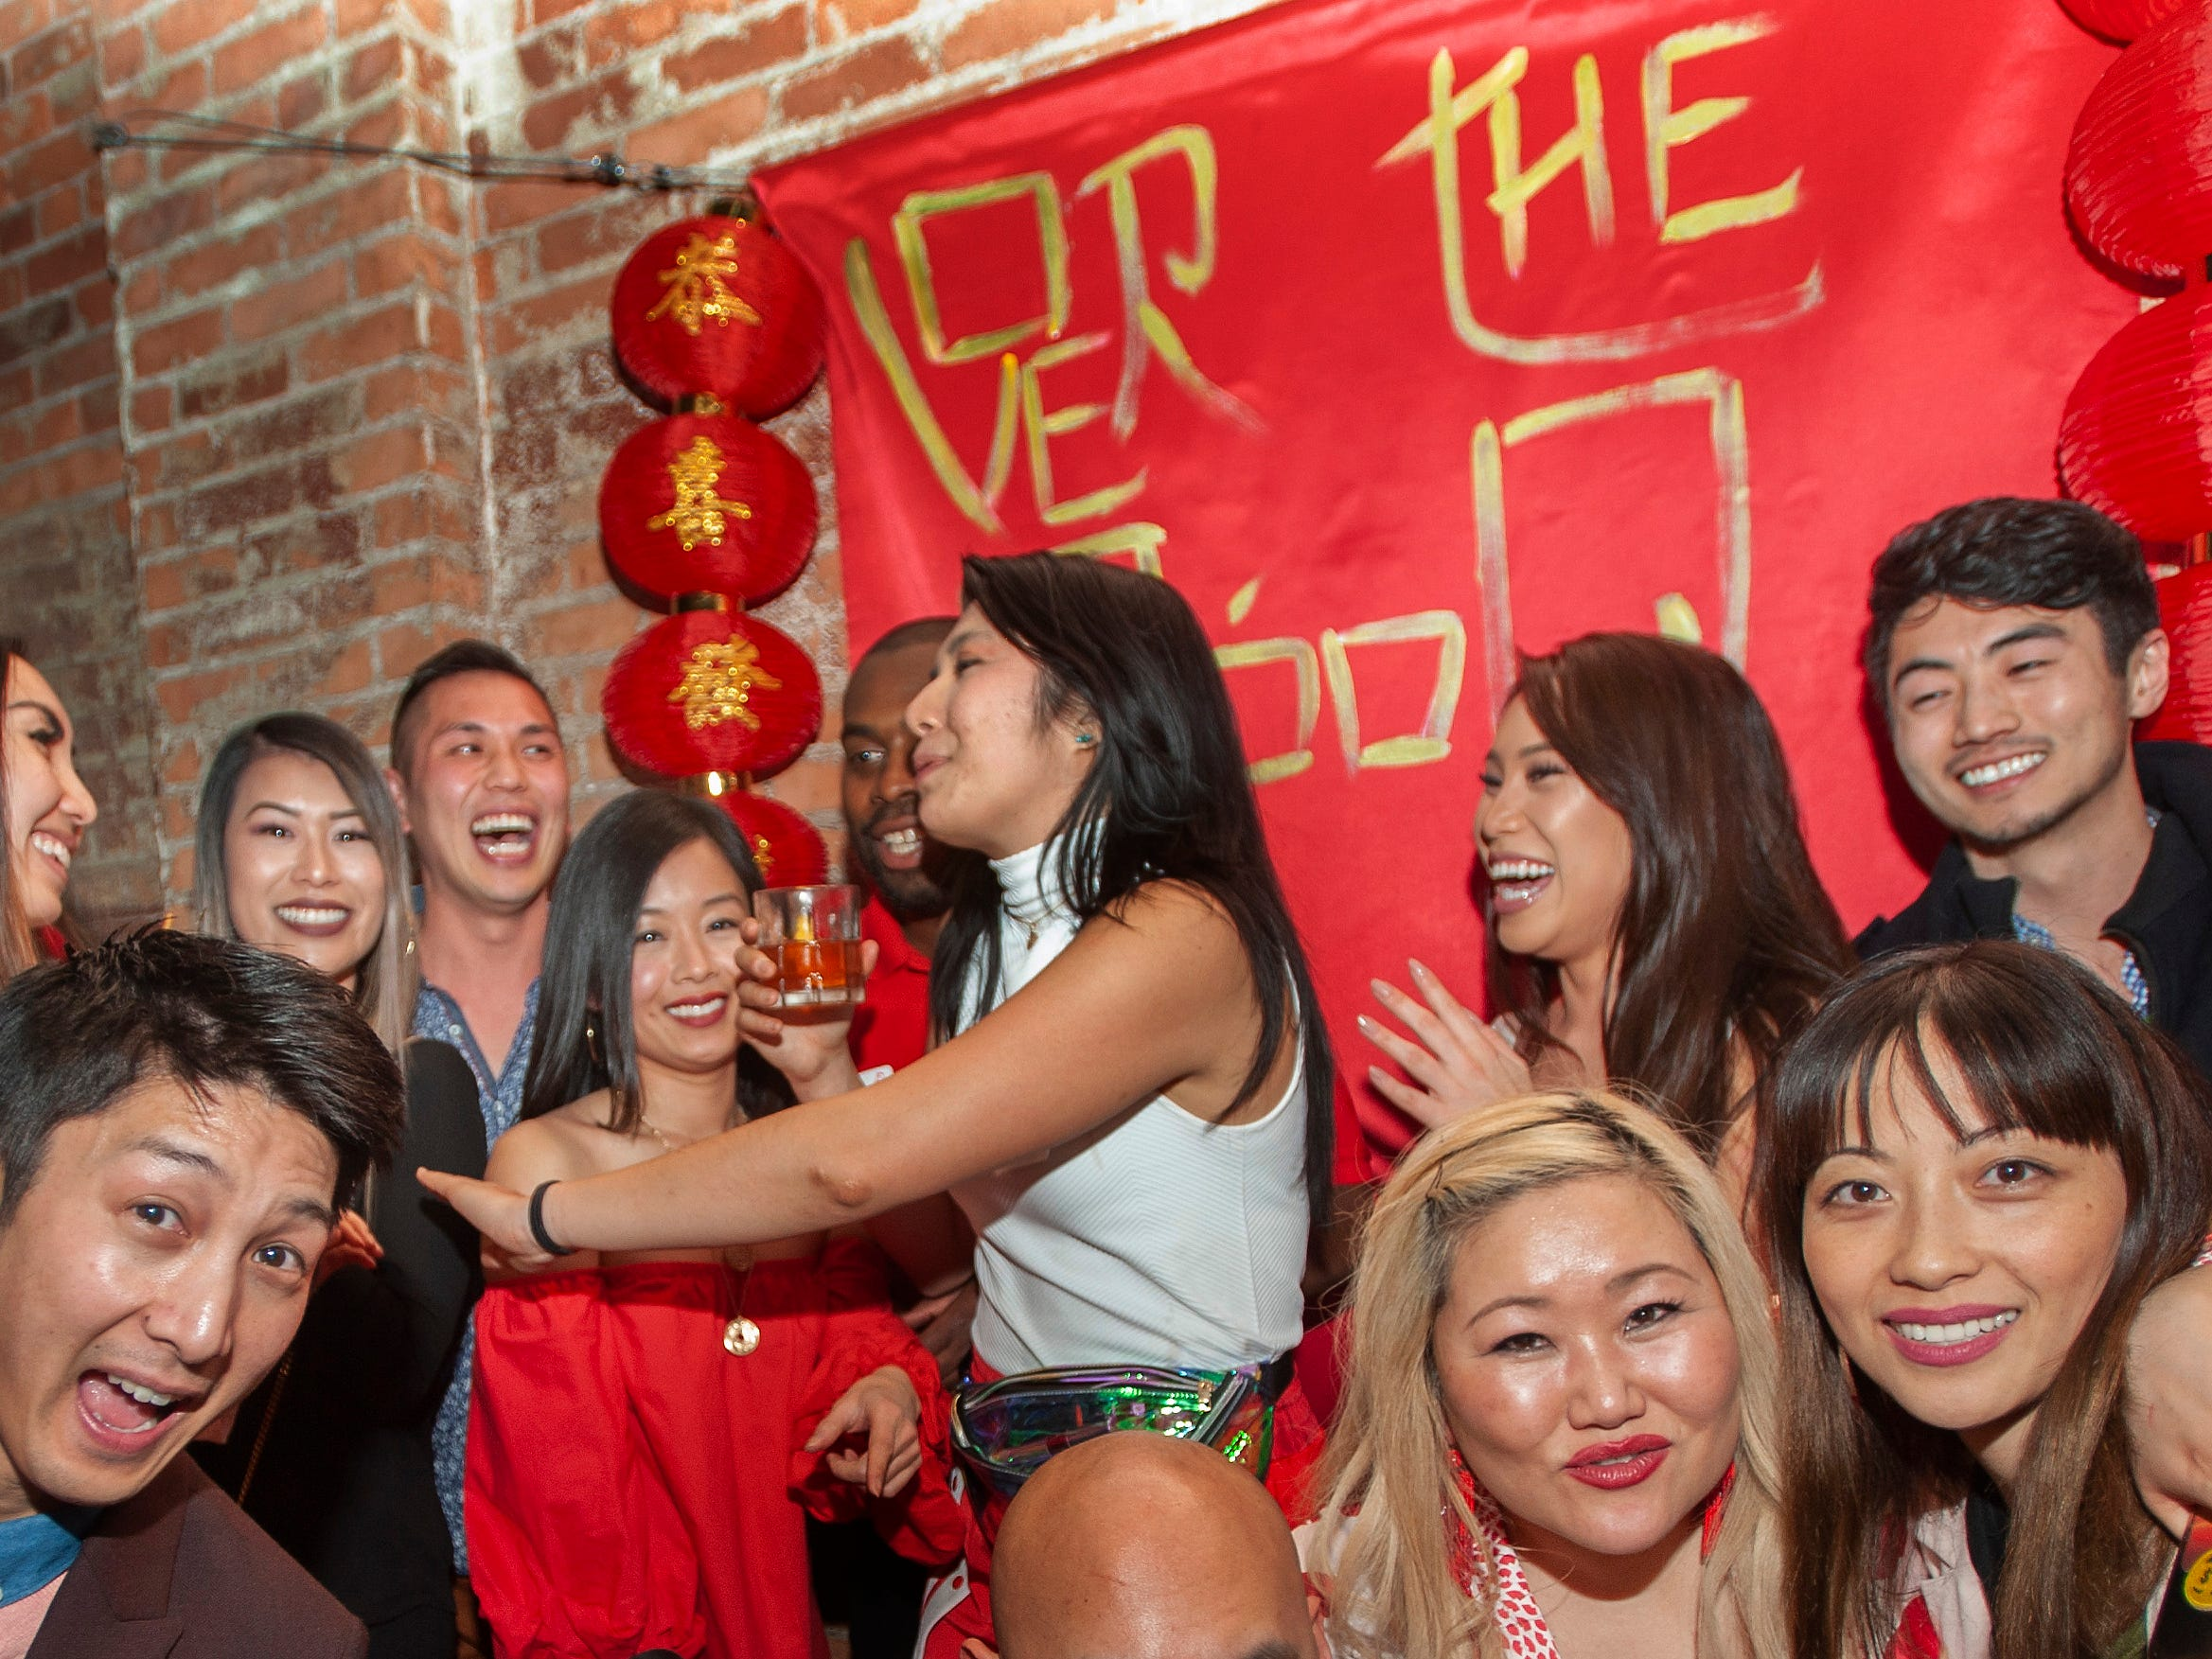 Over the Moon party goer David Tran (far left) of Windsor and party organizers Esther Kim of Grosse Pointe Farms (right) and Gowhnou Lee of Royal Oak (far right)  and others celebrate the Lunar New Year with an east-Asian style party at Detroit City Distillery in Eastern Market on Thursday, February 7, 2019.